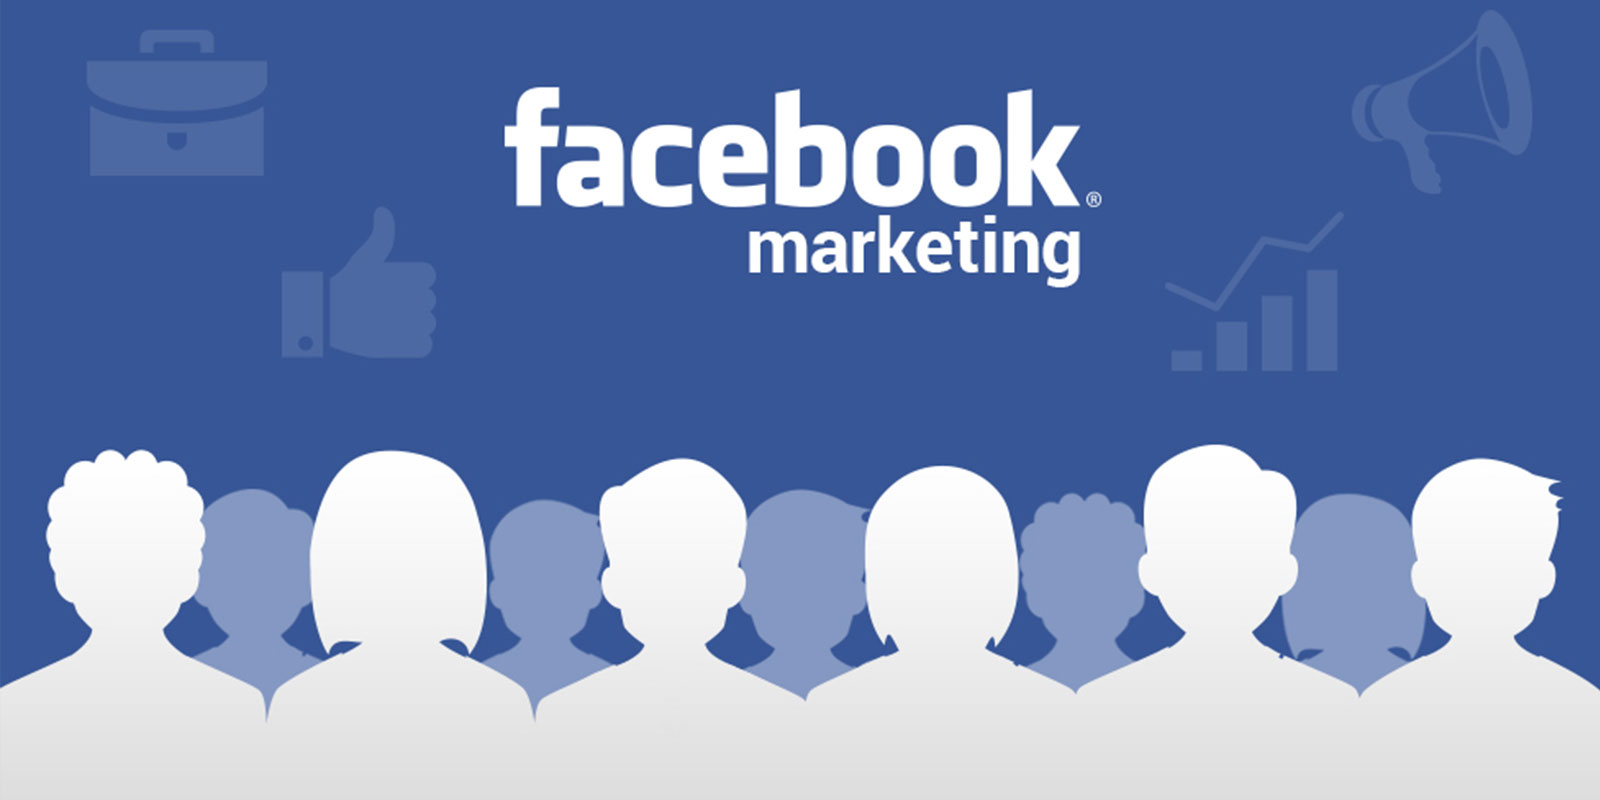 facebook marketing company in india